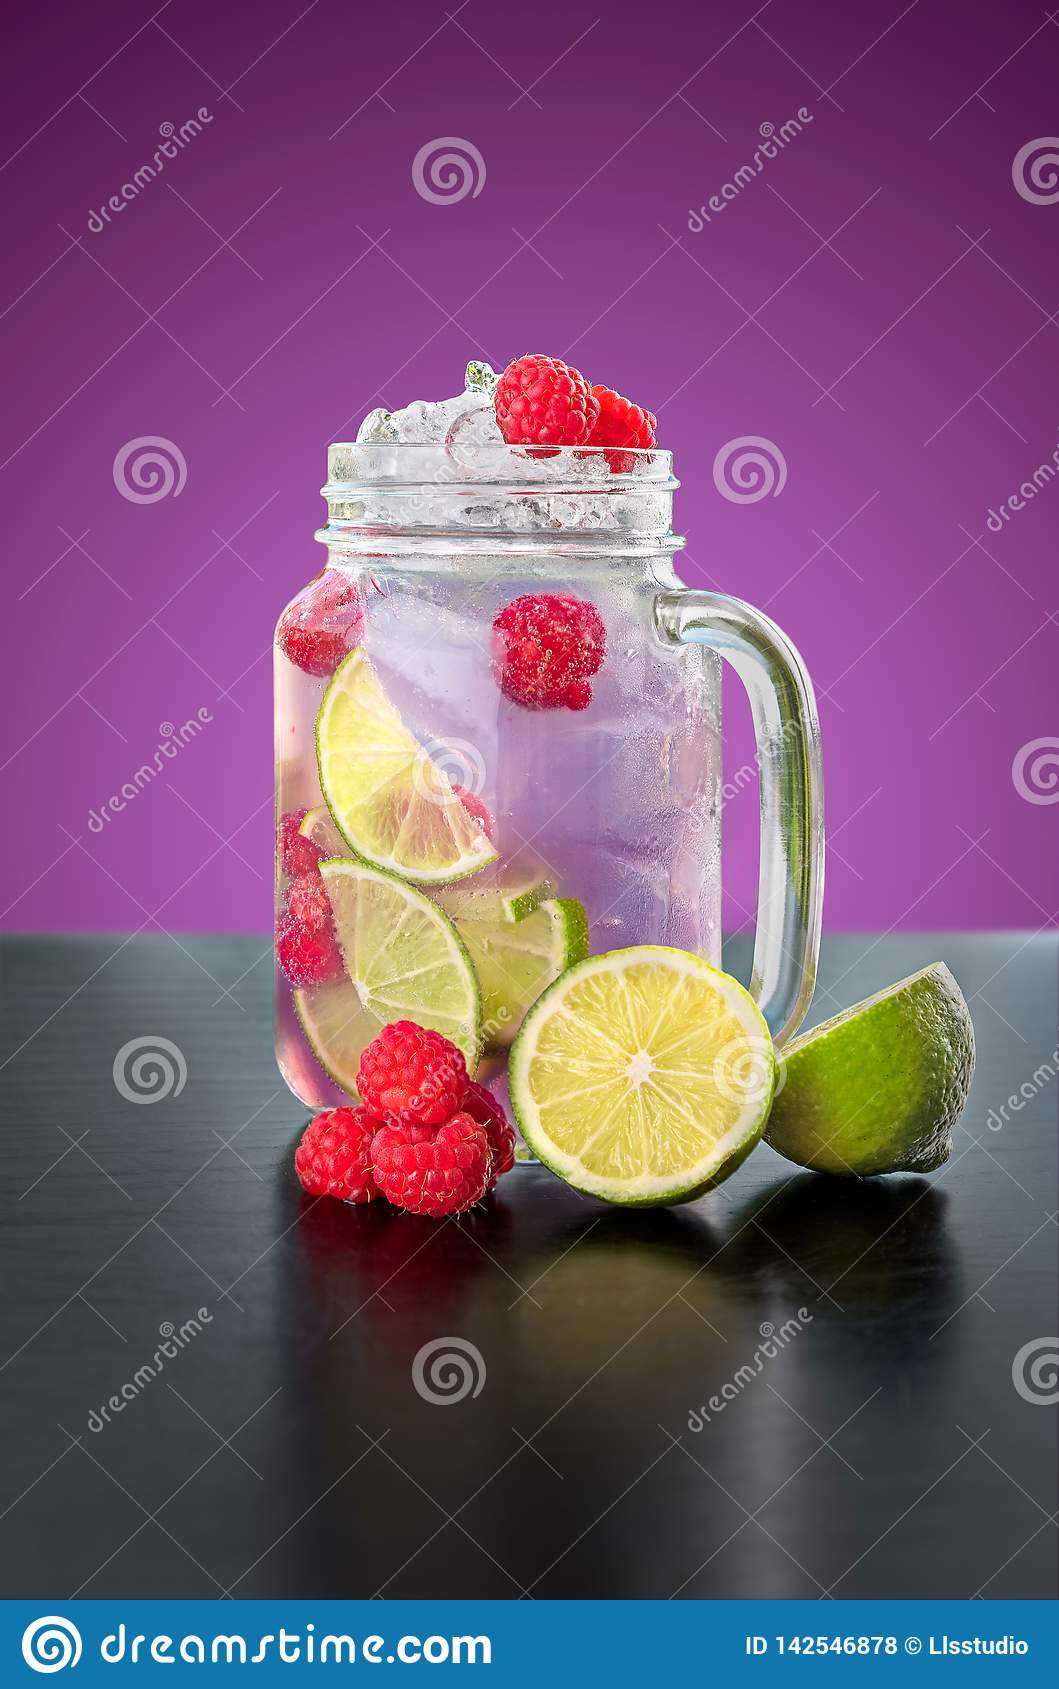 Homemade Violet Lemonade in a glass jar.